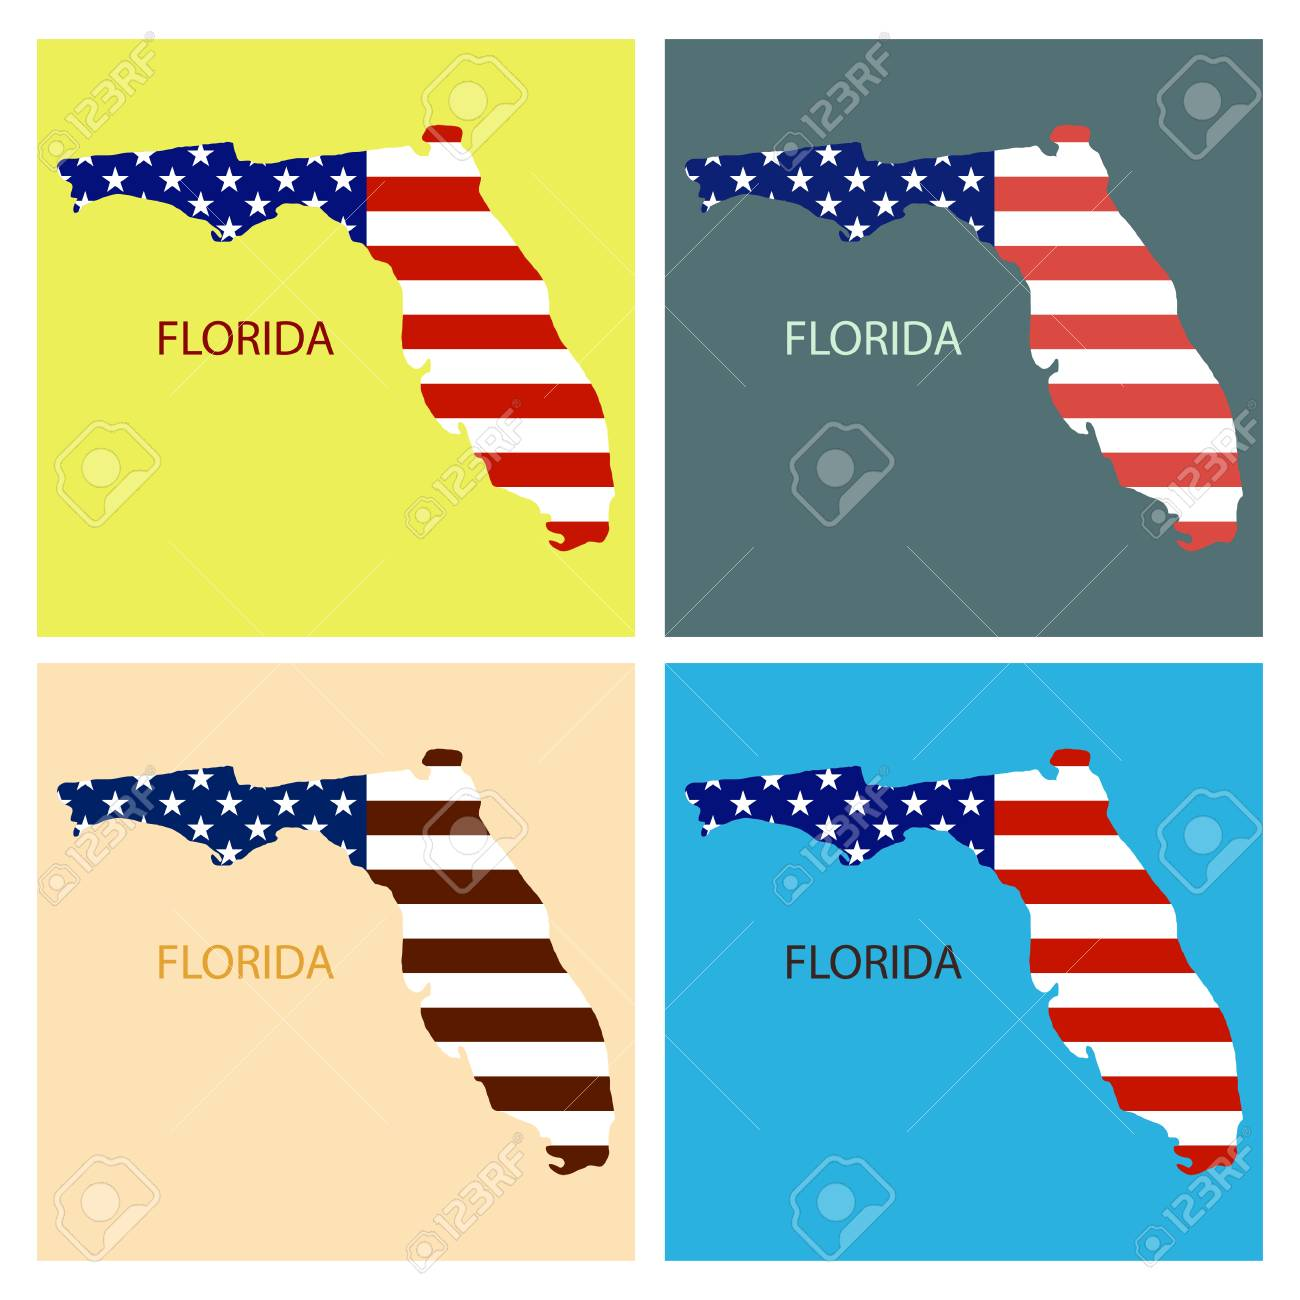 America Map Florida.Florida State Of America With Map Flag Print On Map Of Usa For